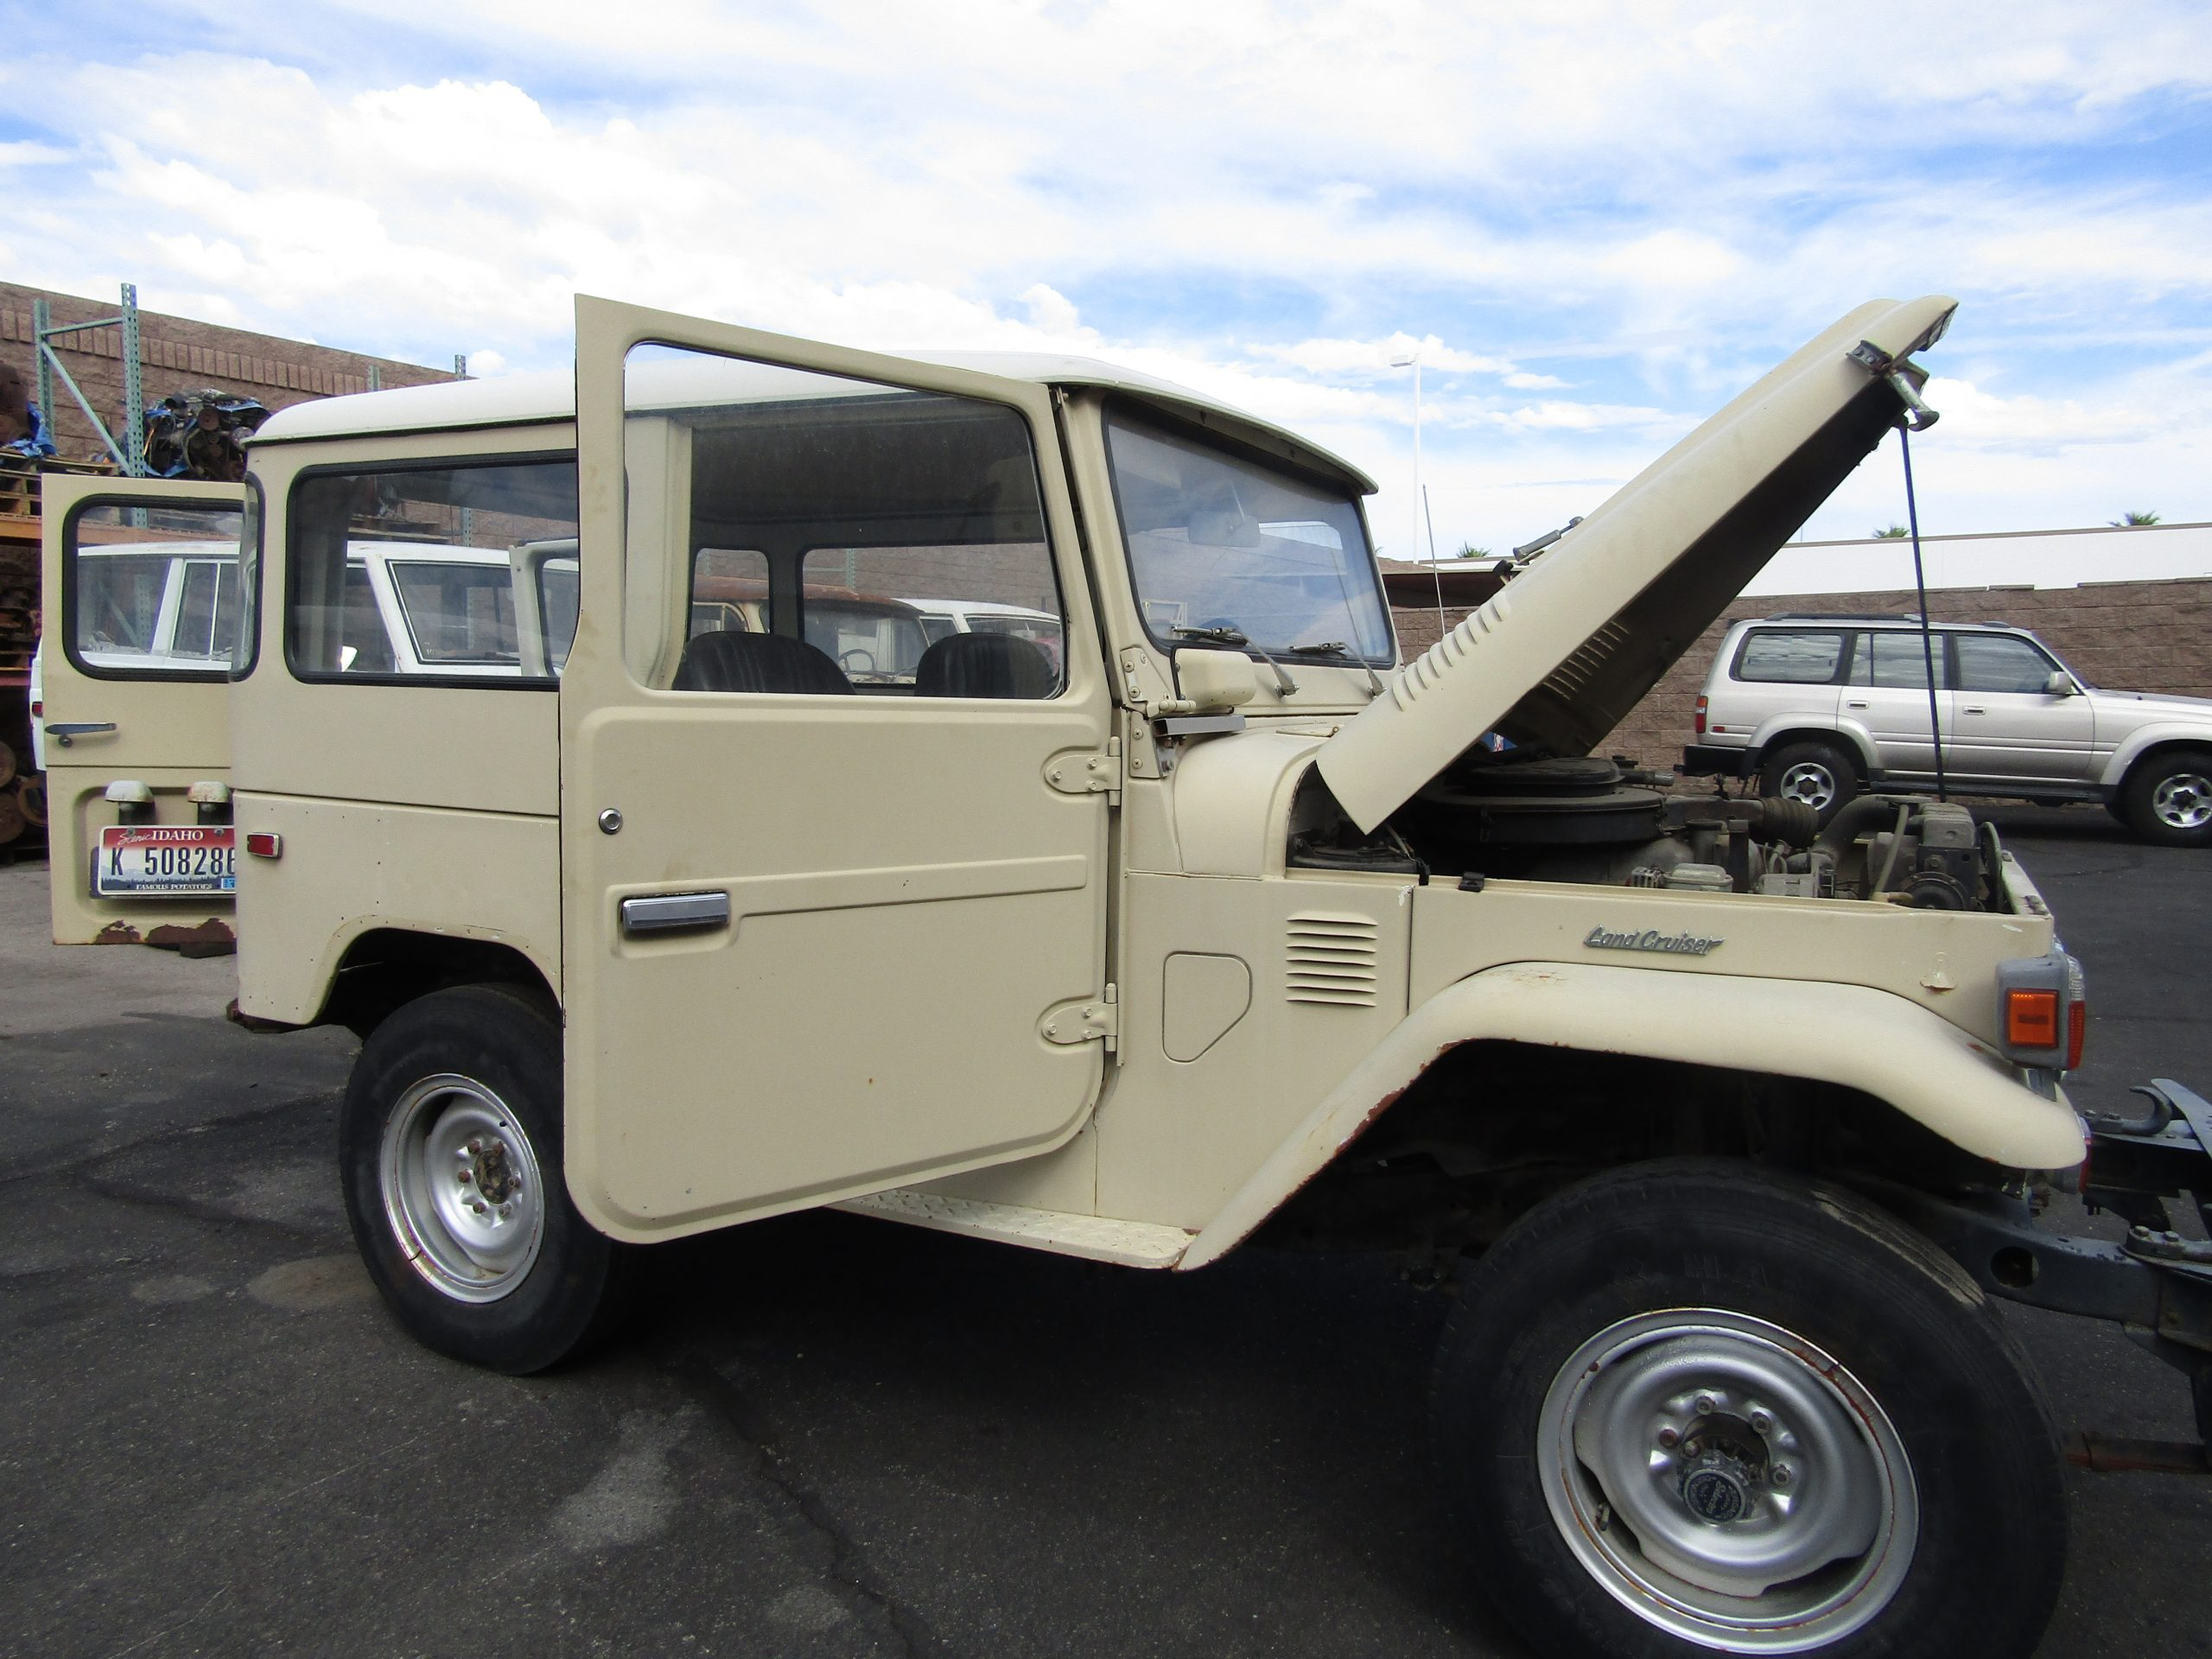 1976 FJ40 Ready for Restoration or DIY —– Frame Up or Partial Conversion Available